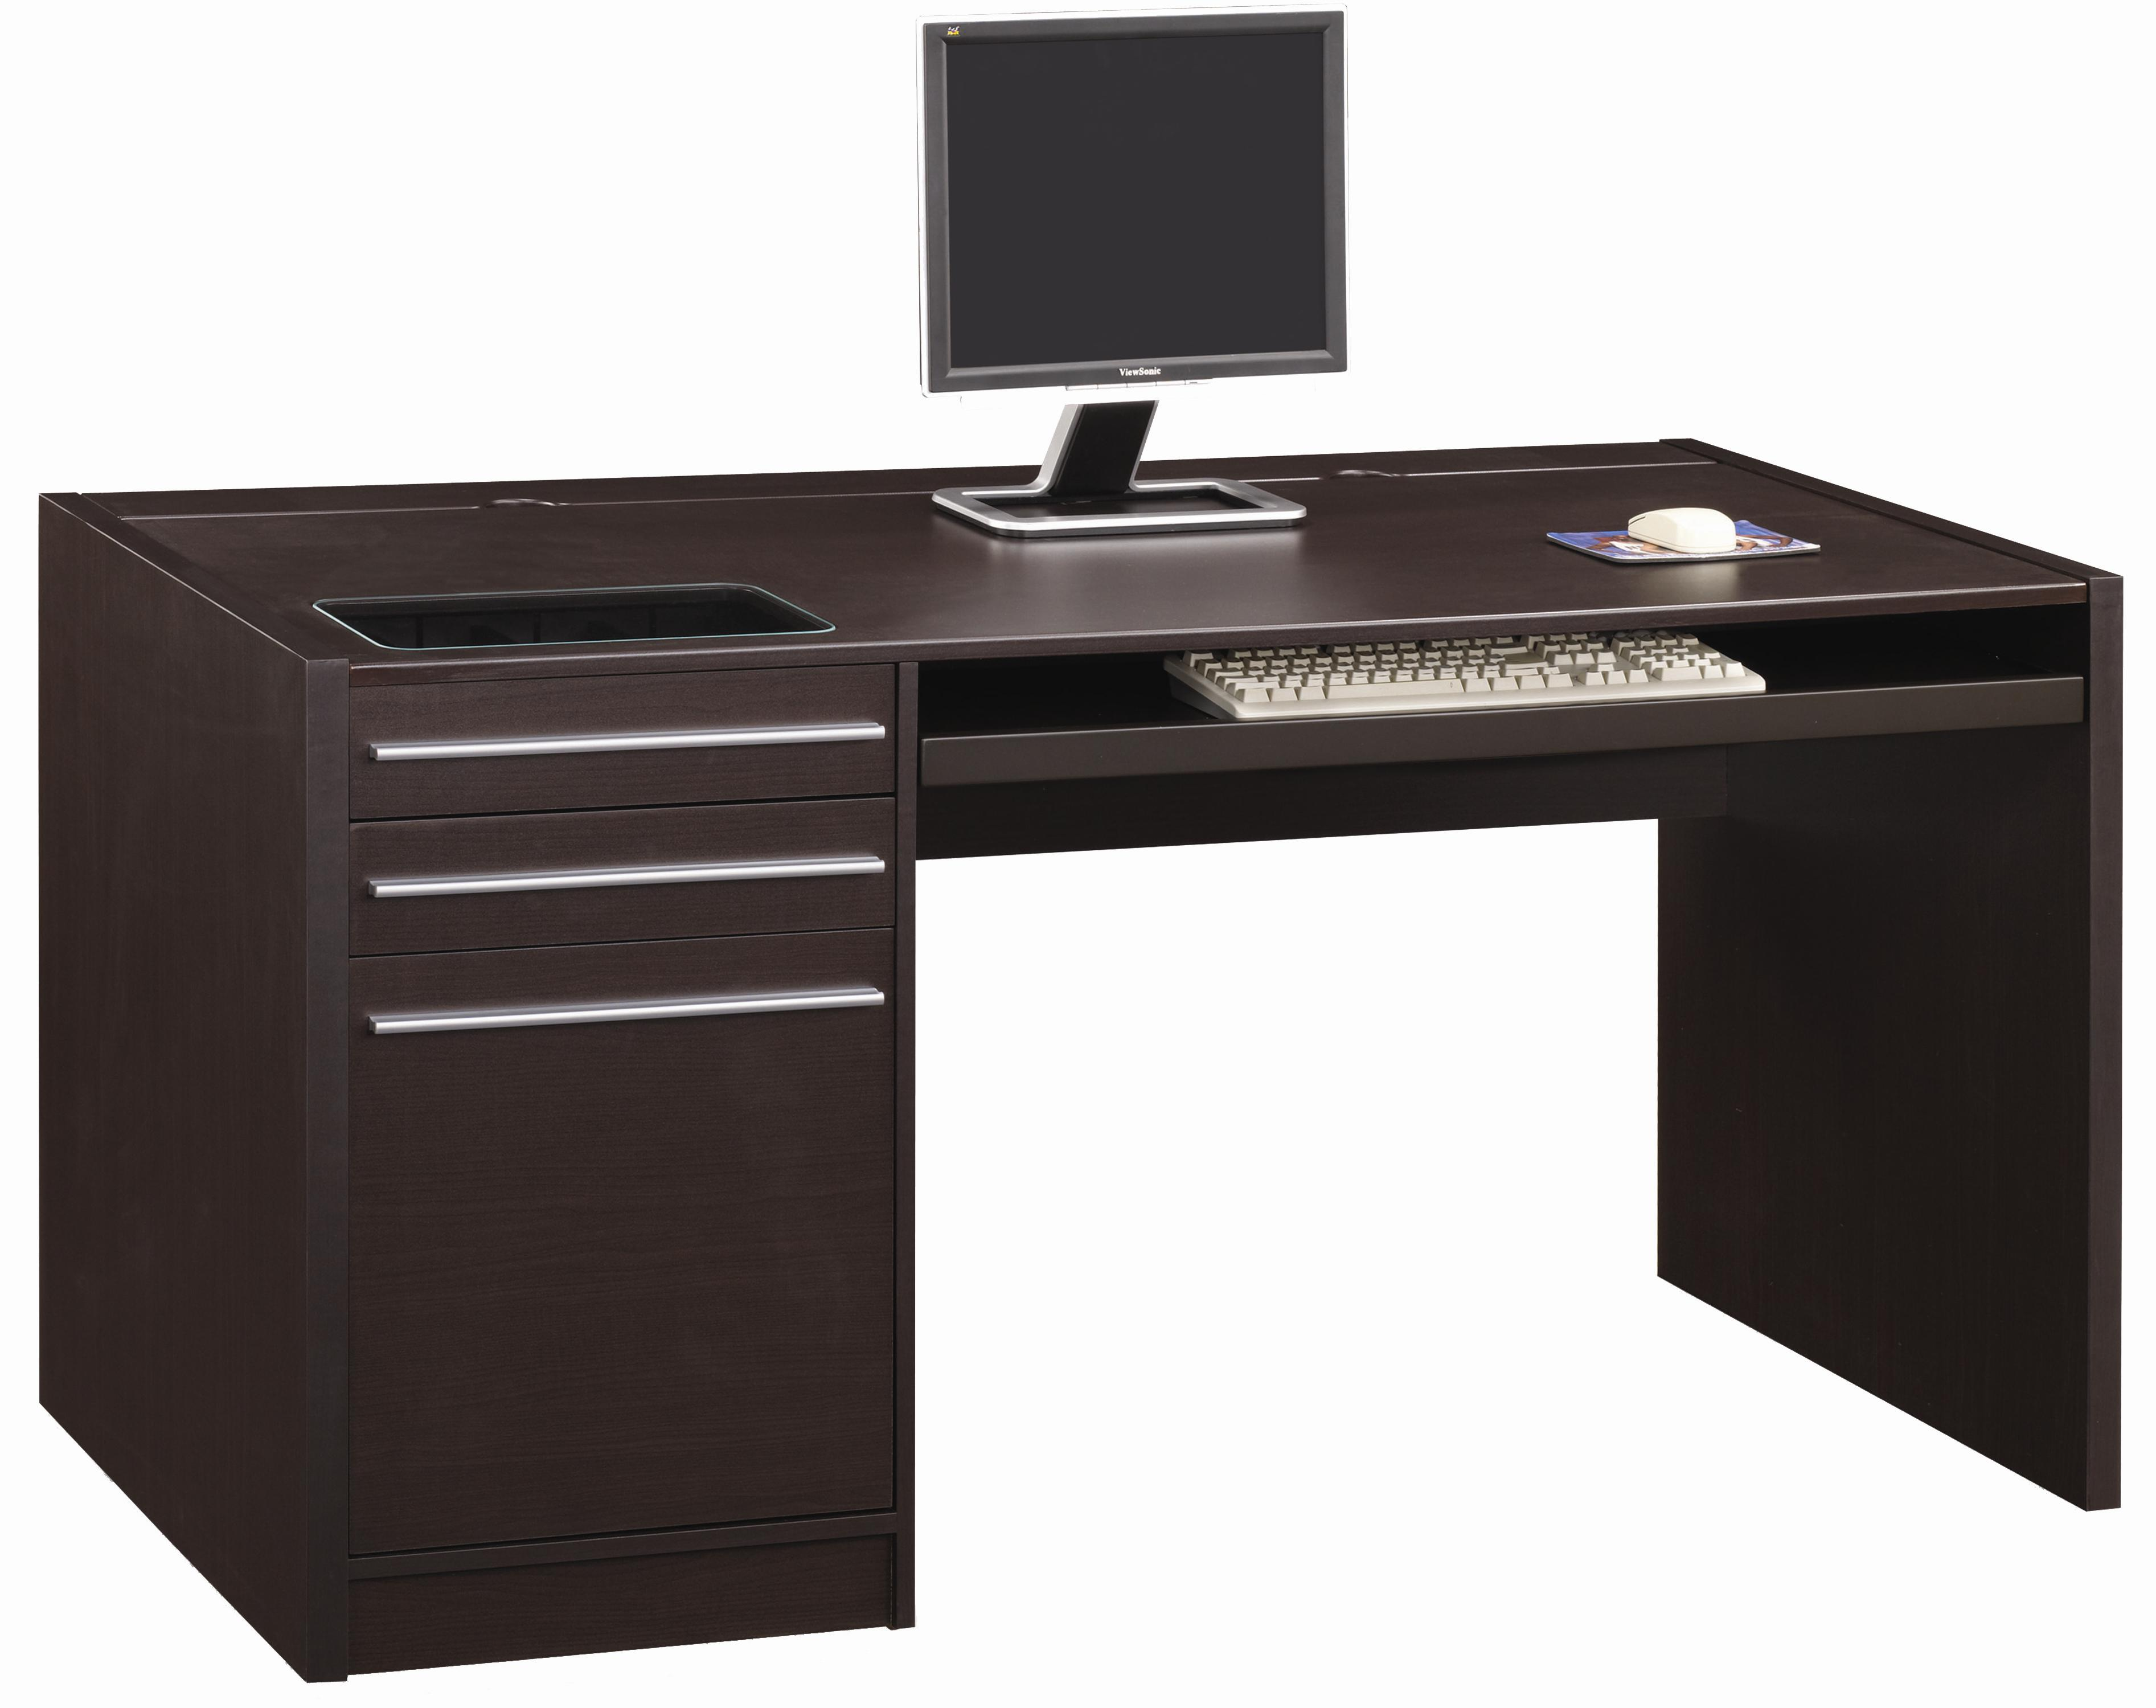 Ontario Single Pedestal Desk by Coaster at Northeast Factory Direct